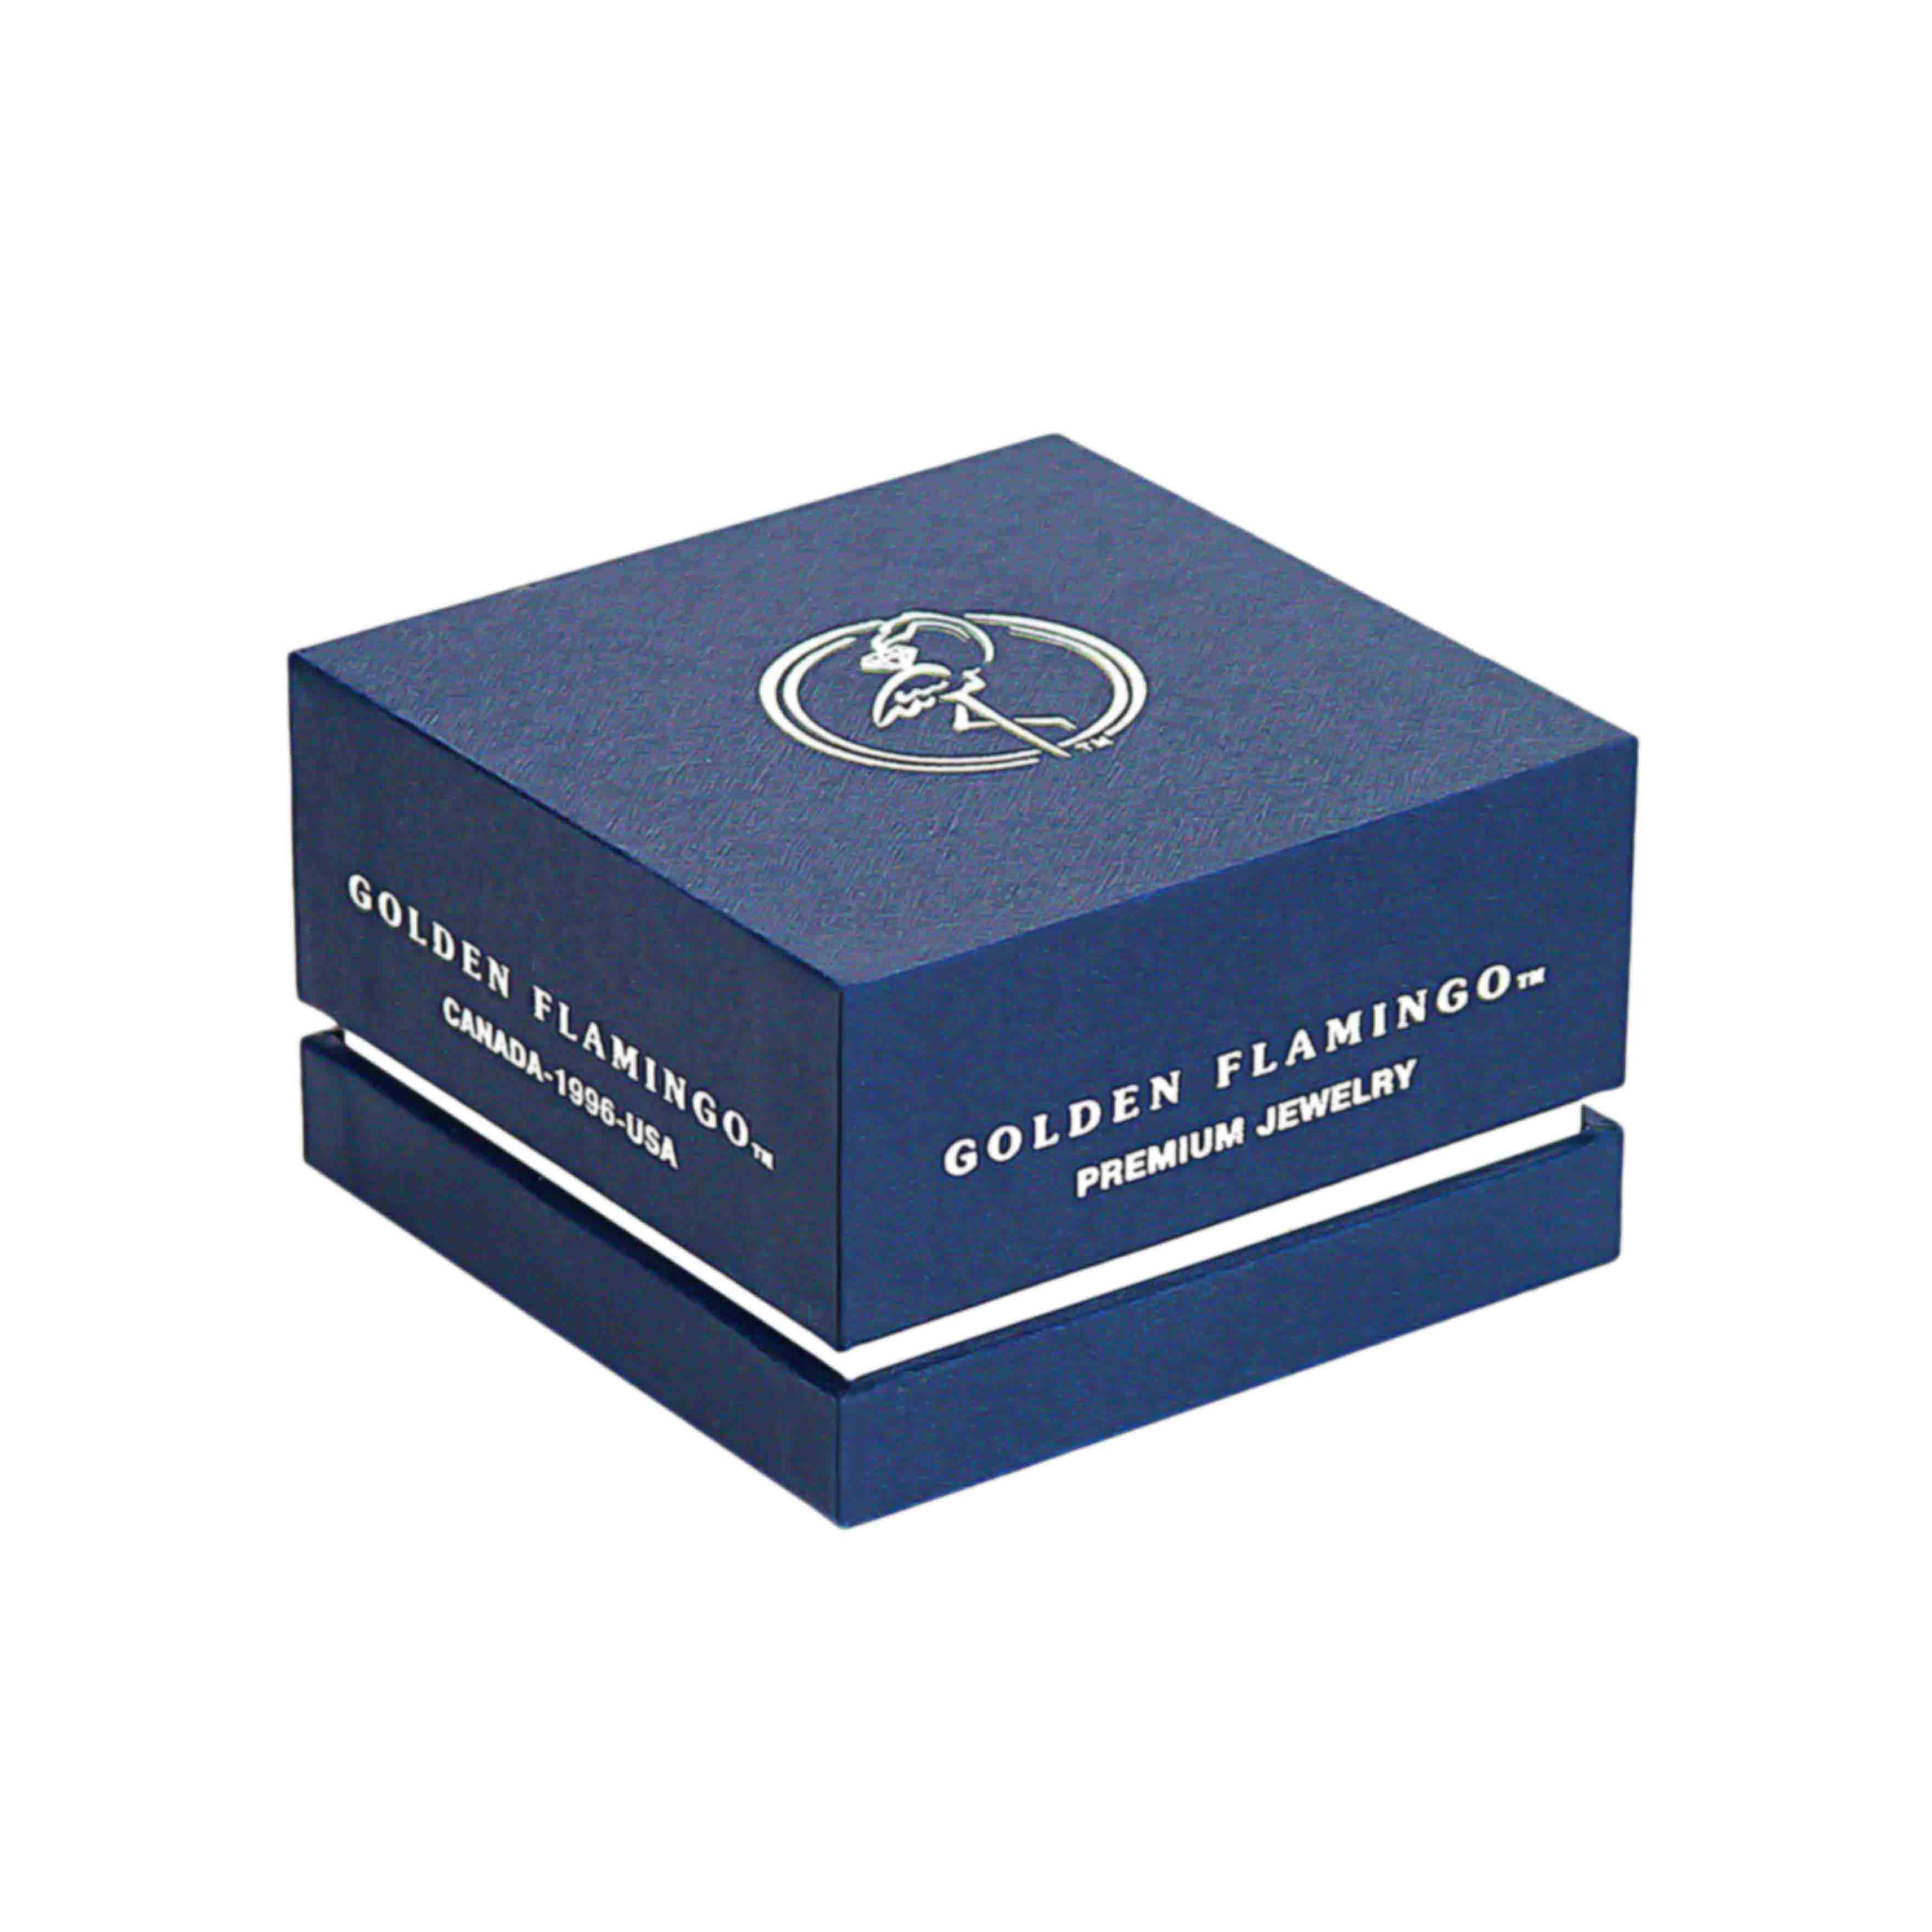 Boutique-quality Gift Box for Gold Ring by Golden Flamingo